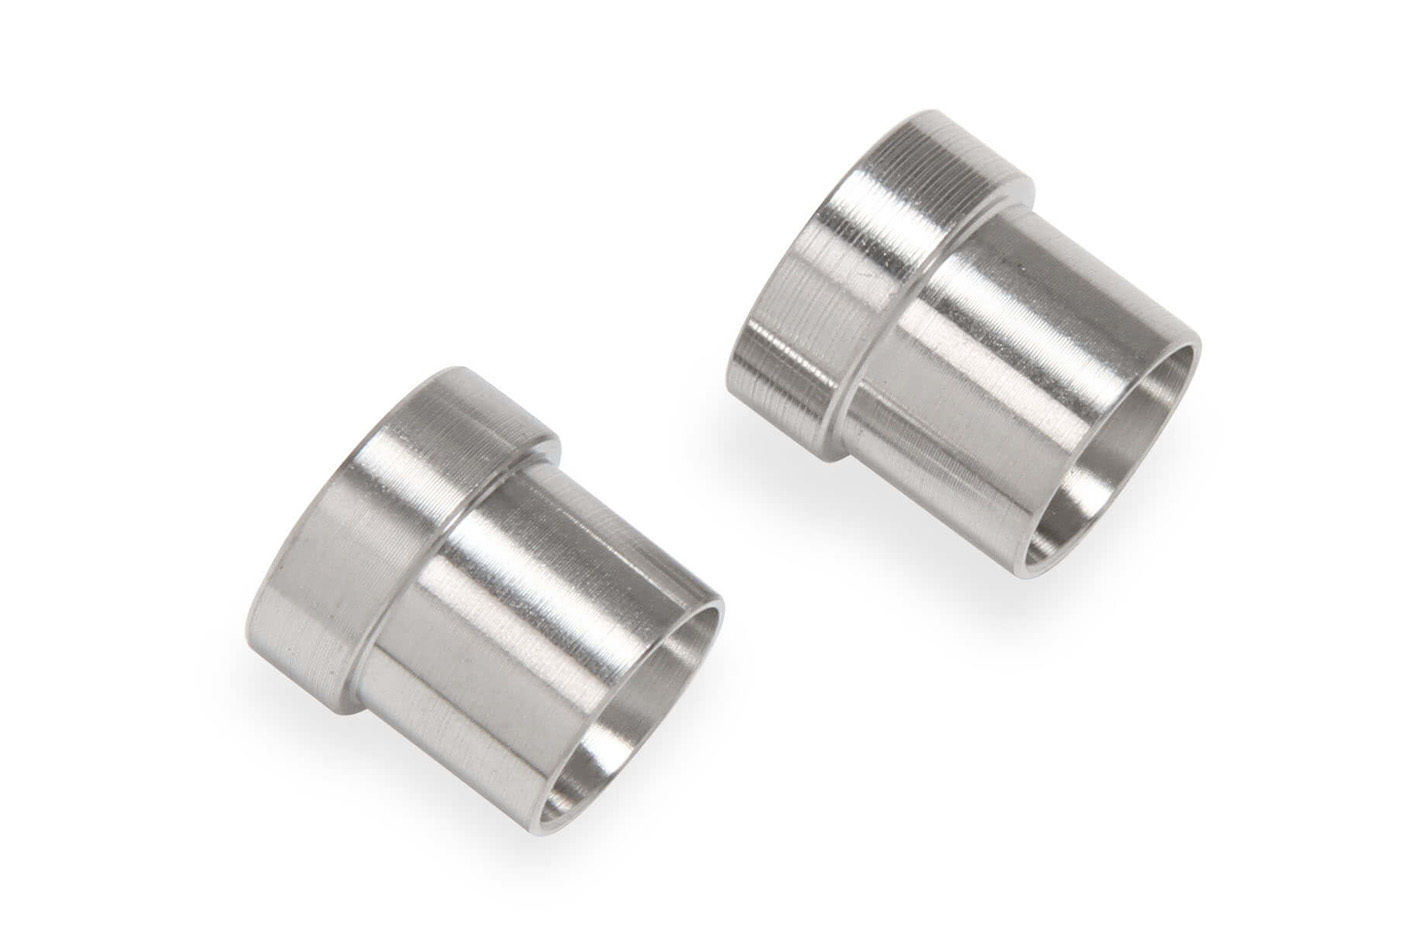 Earls SS581903ERL Fitting, Tube Sleeve, 3 AN, 3/16 in Tube, Stainless, Natural, Pair